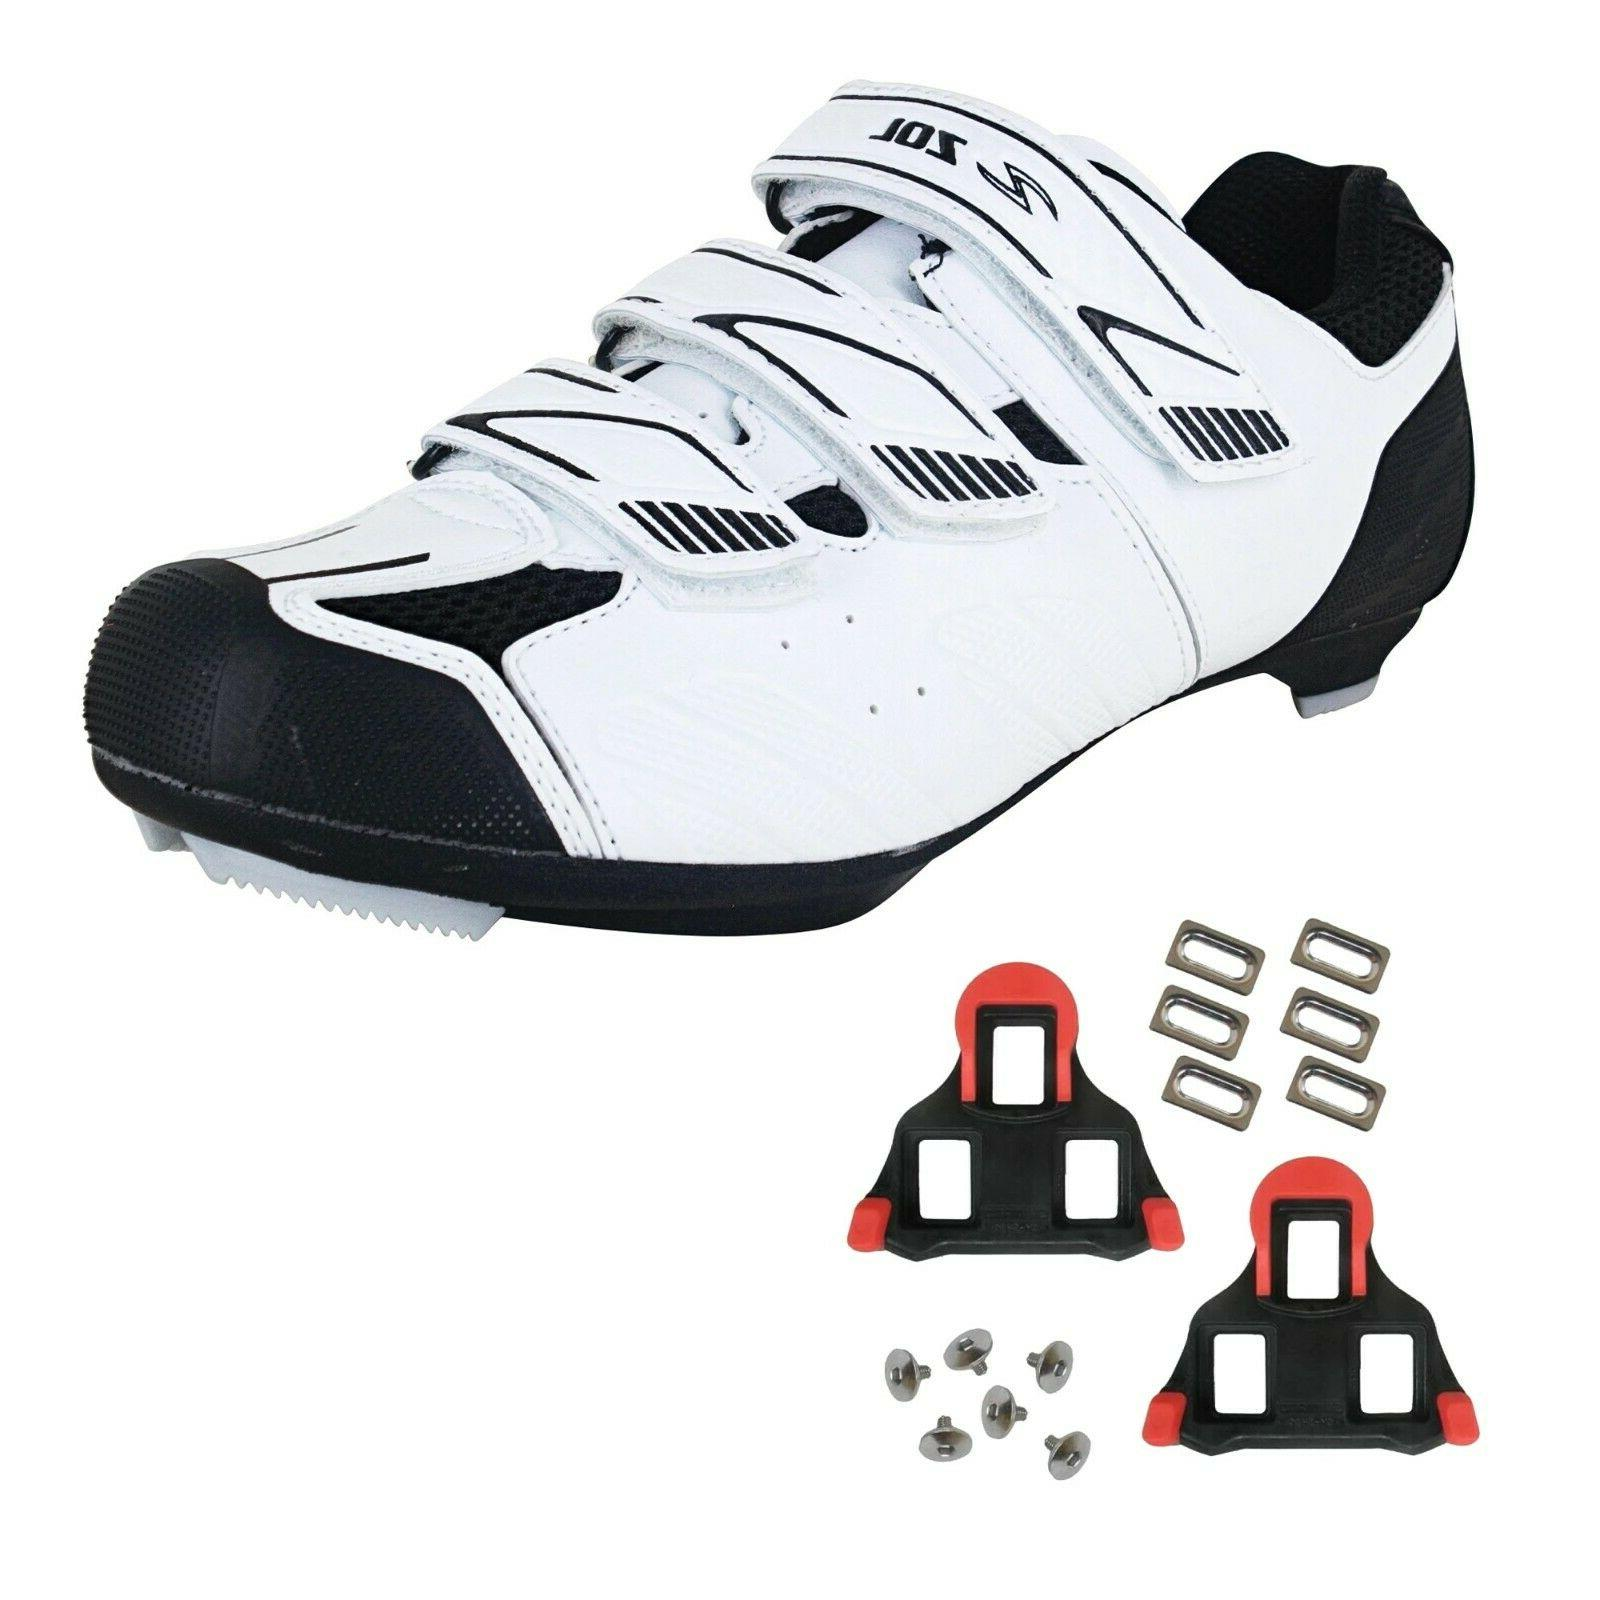 stage road cycling shoes with spd cleats